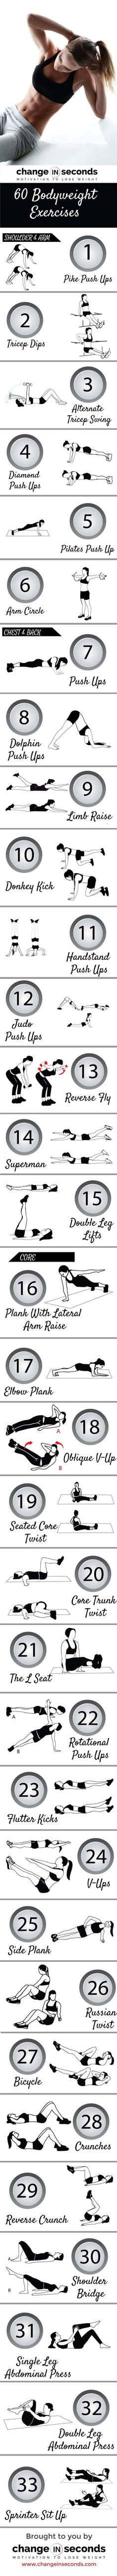 Workout at home with no equipment for women with bodyweight exercises! Infographics with details on how to do 60 different workouts! #fitnessworkouts, #fitness, #womenfitness, #workoutplan, #exercise, #exercises, #workout #womenworkoutplan,